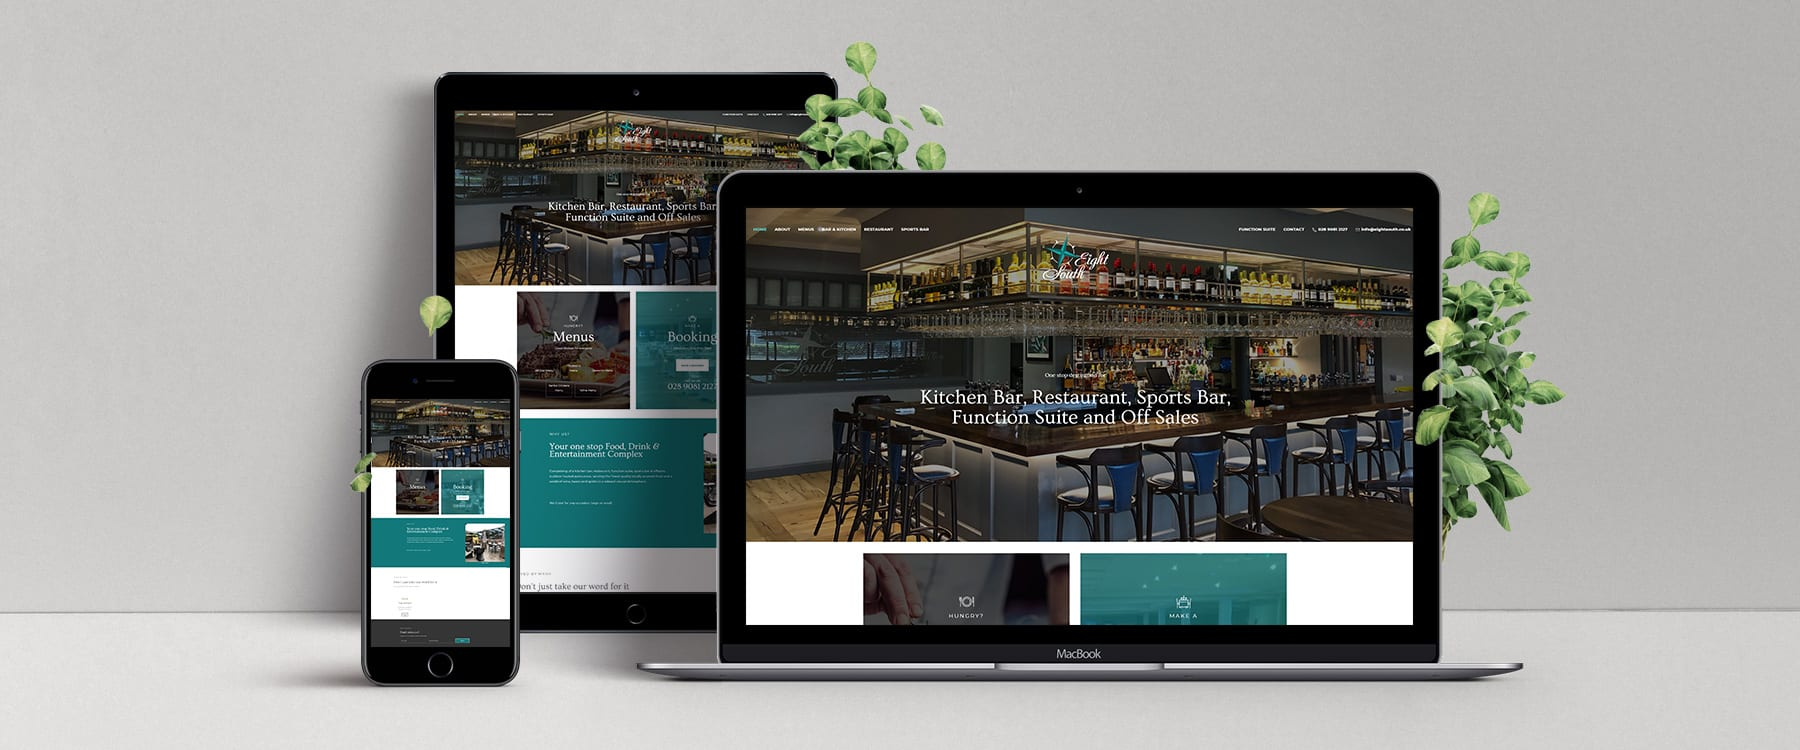 Eight South Bar & Restaurant Launch New Website! Image